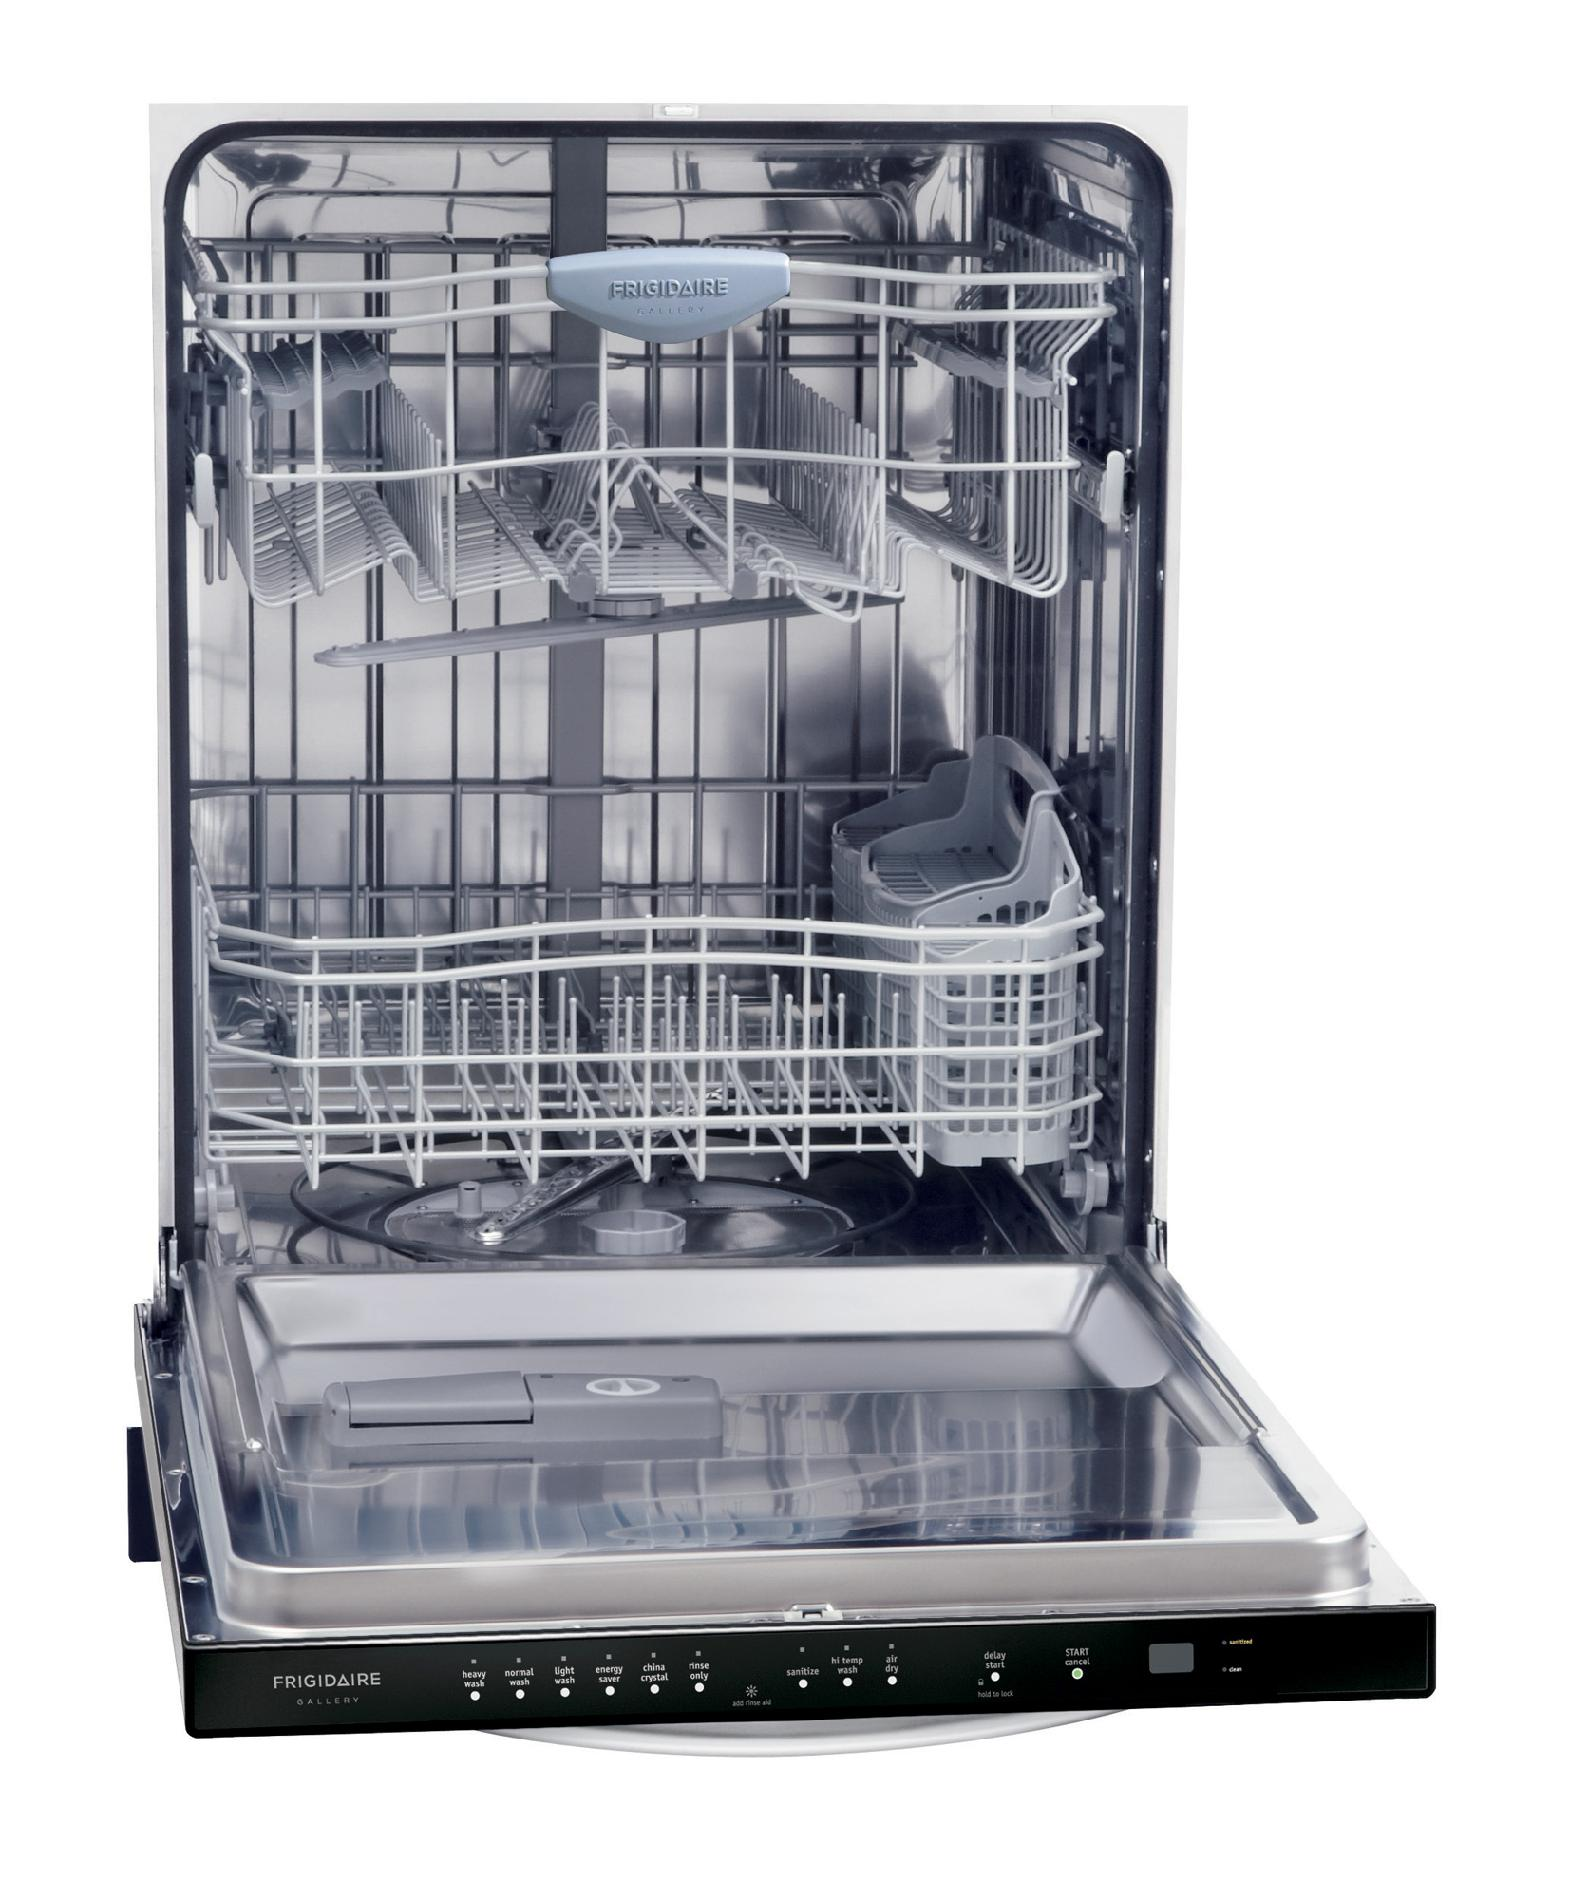 "Frigidaire Gallery Gallery 24"" Built-In Dishwasher  - Stainless Steel"